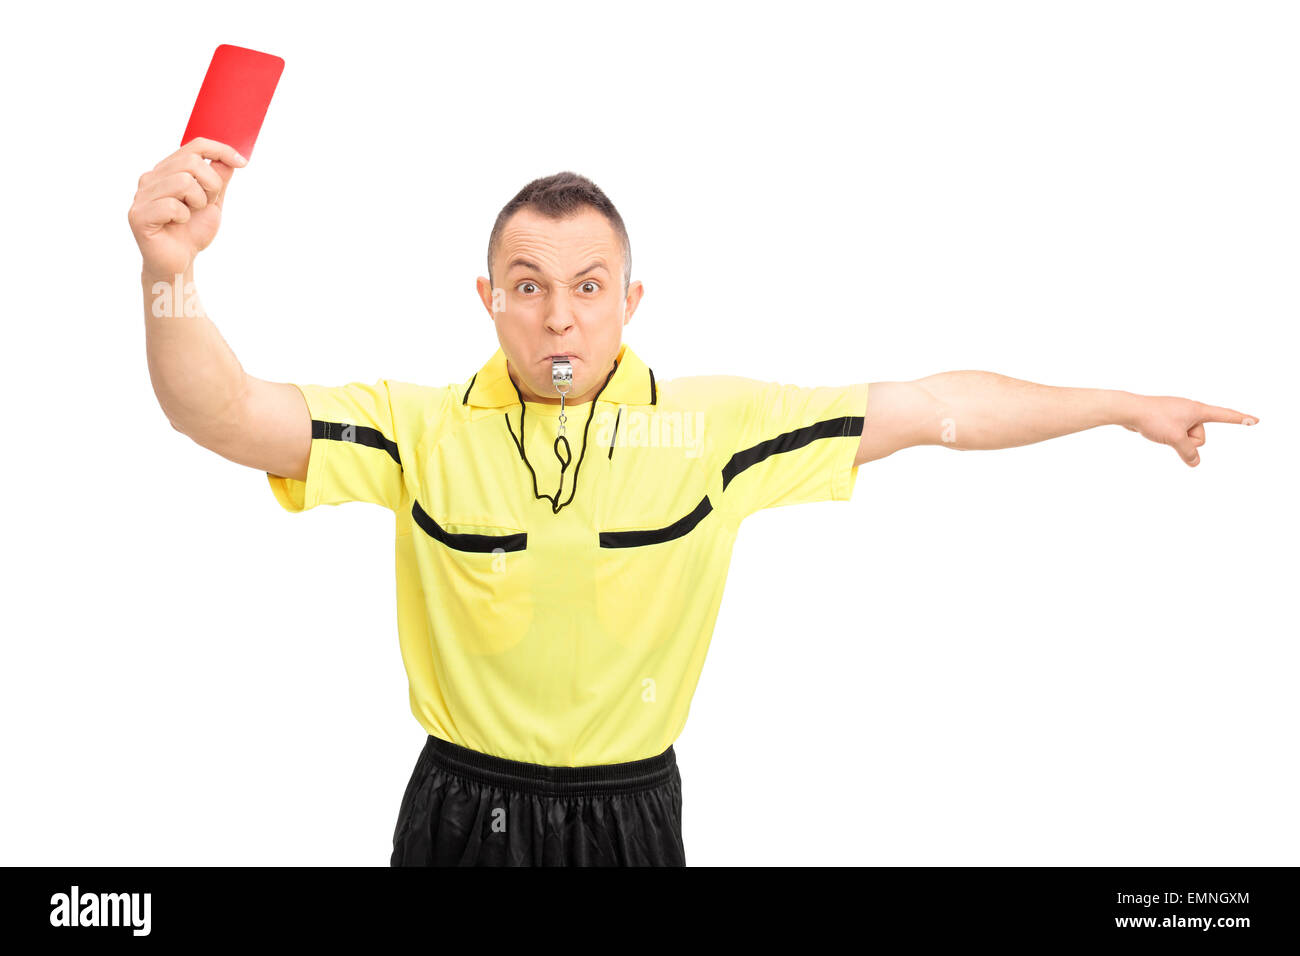 Angry football referee in a yellow jersey showing a red card and pointing with his hand isolated on white background - Stock Image